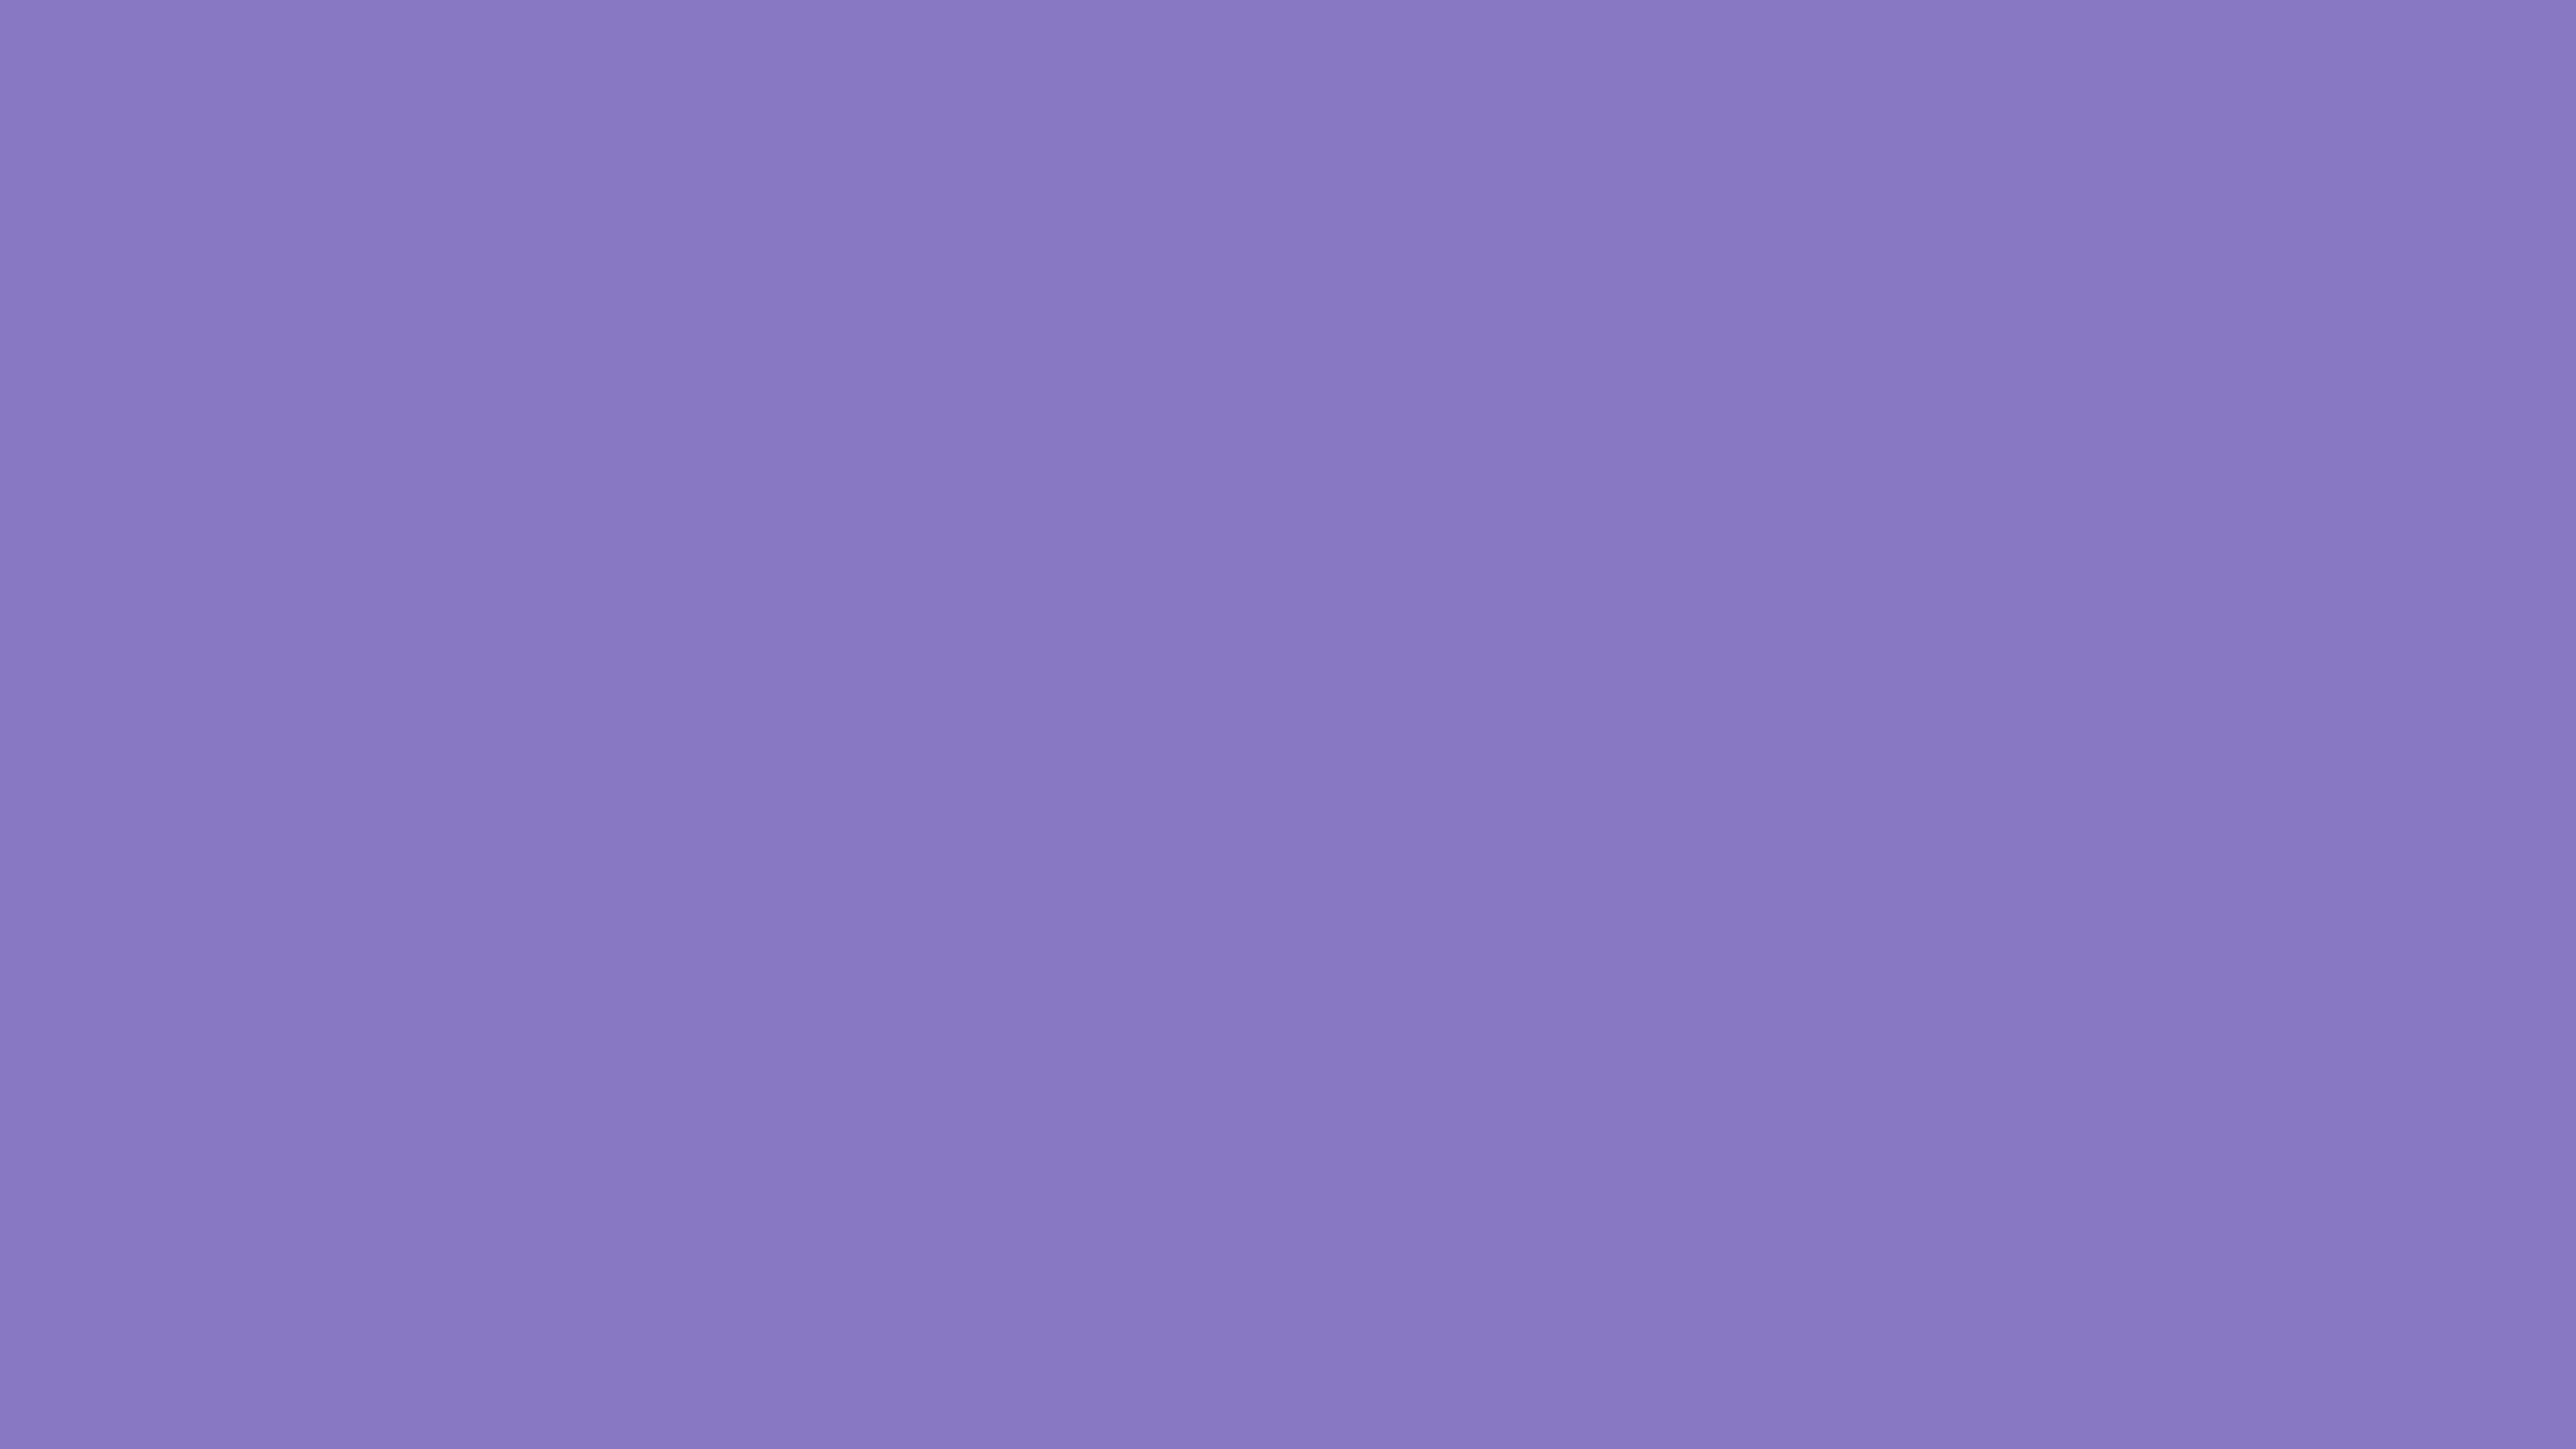 3840x2160 Ube Solid Color Background